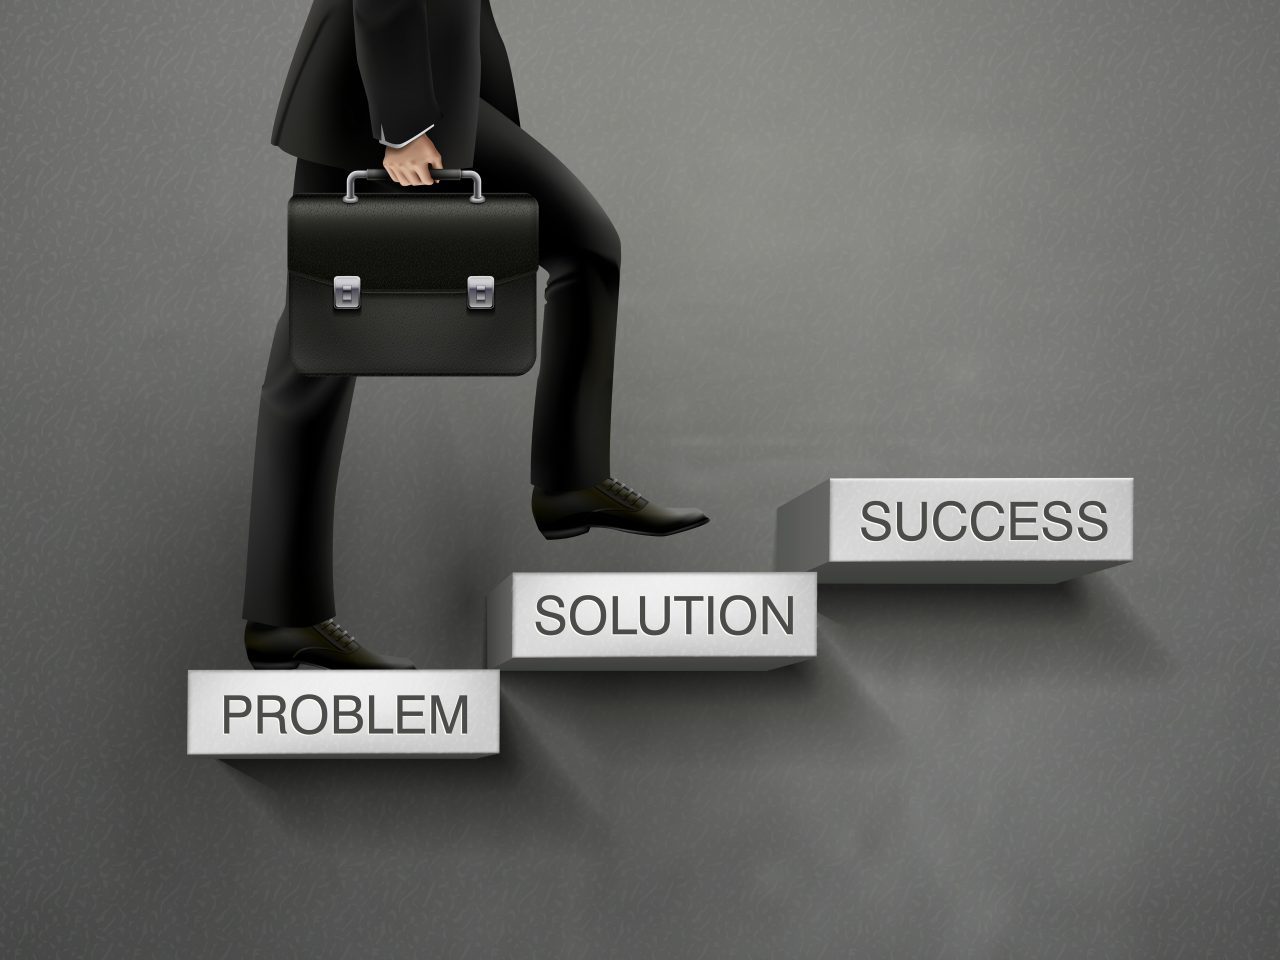 10 Ways to Solve Real Problems